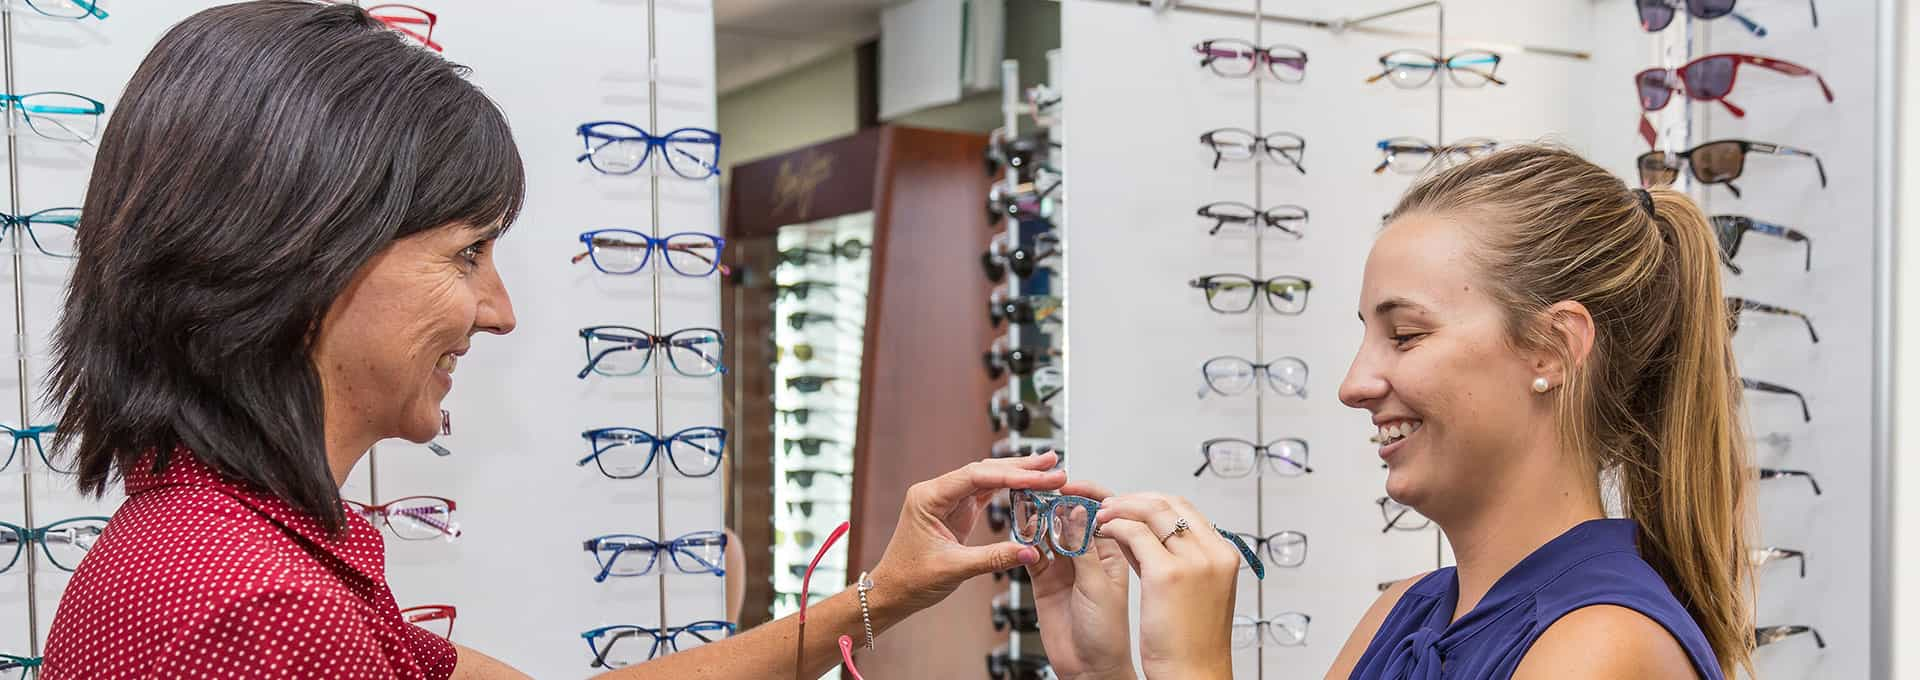 caloundra-vision-optometrists-banner-customer-02-desktop